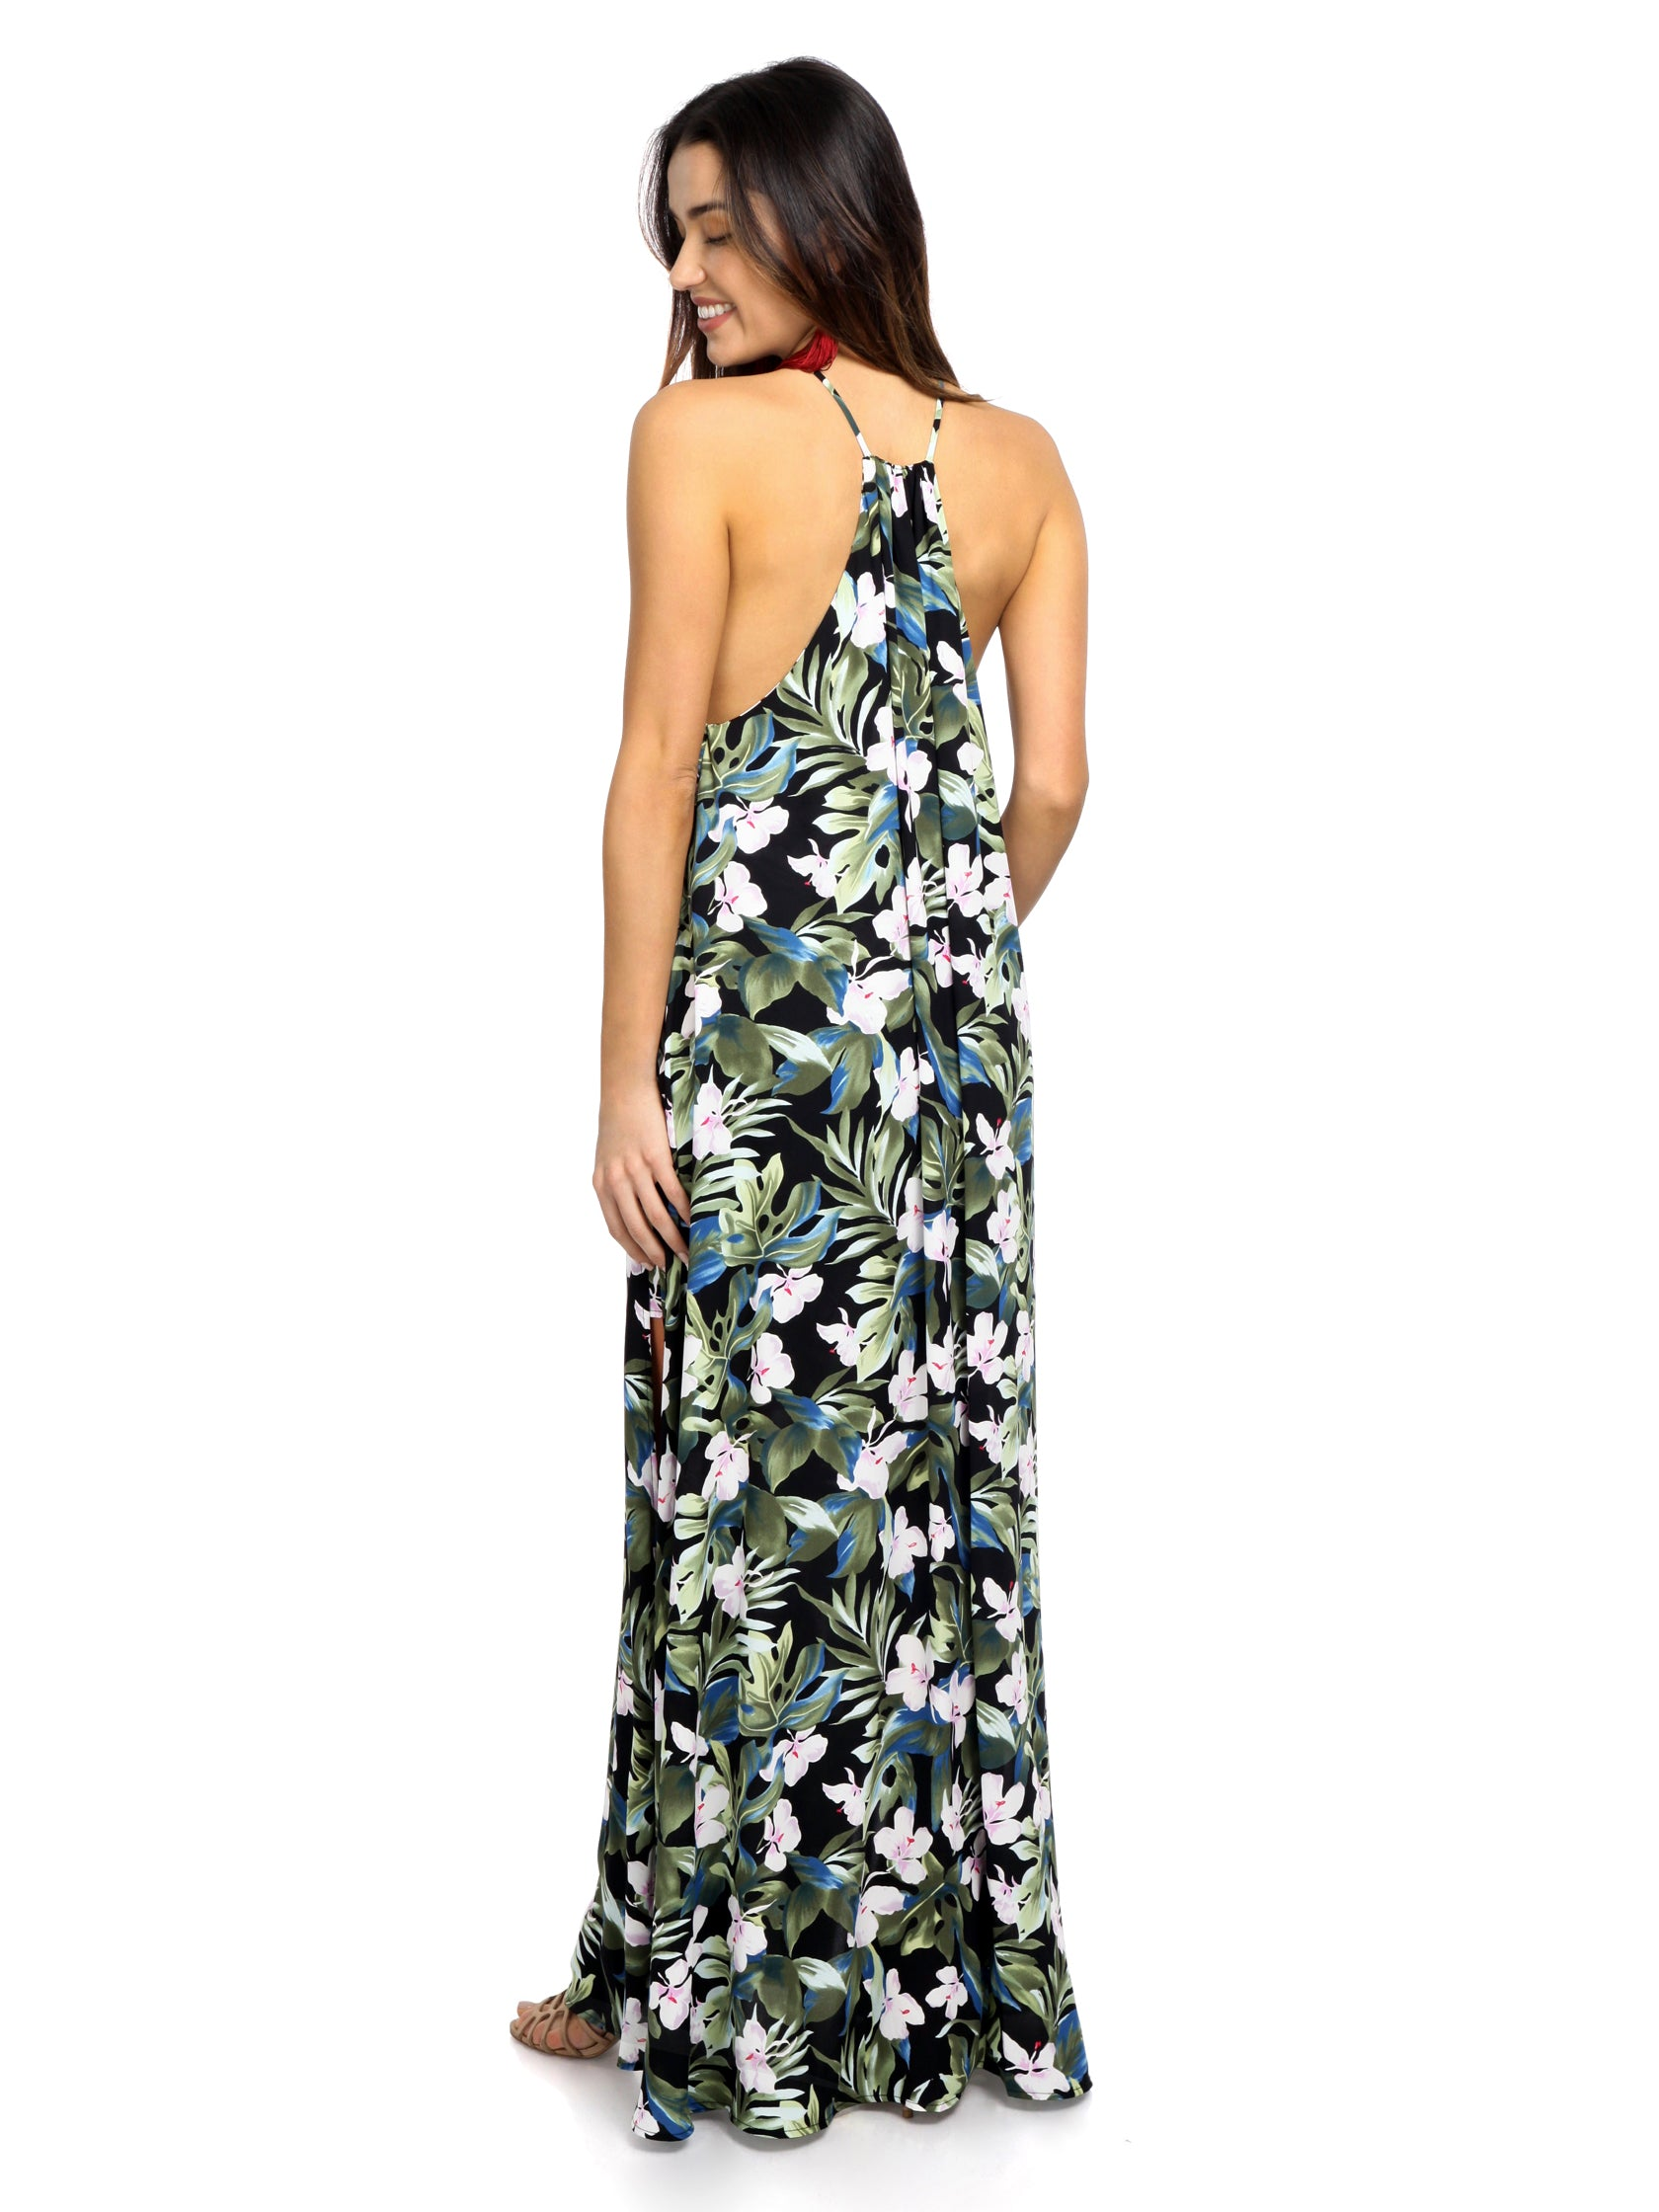 Women wearing a dress rental from Show Me Your Mumu called Bronte Maxi Dress